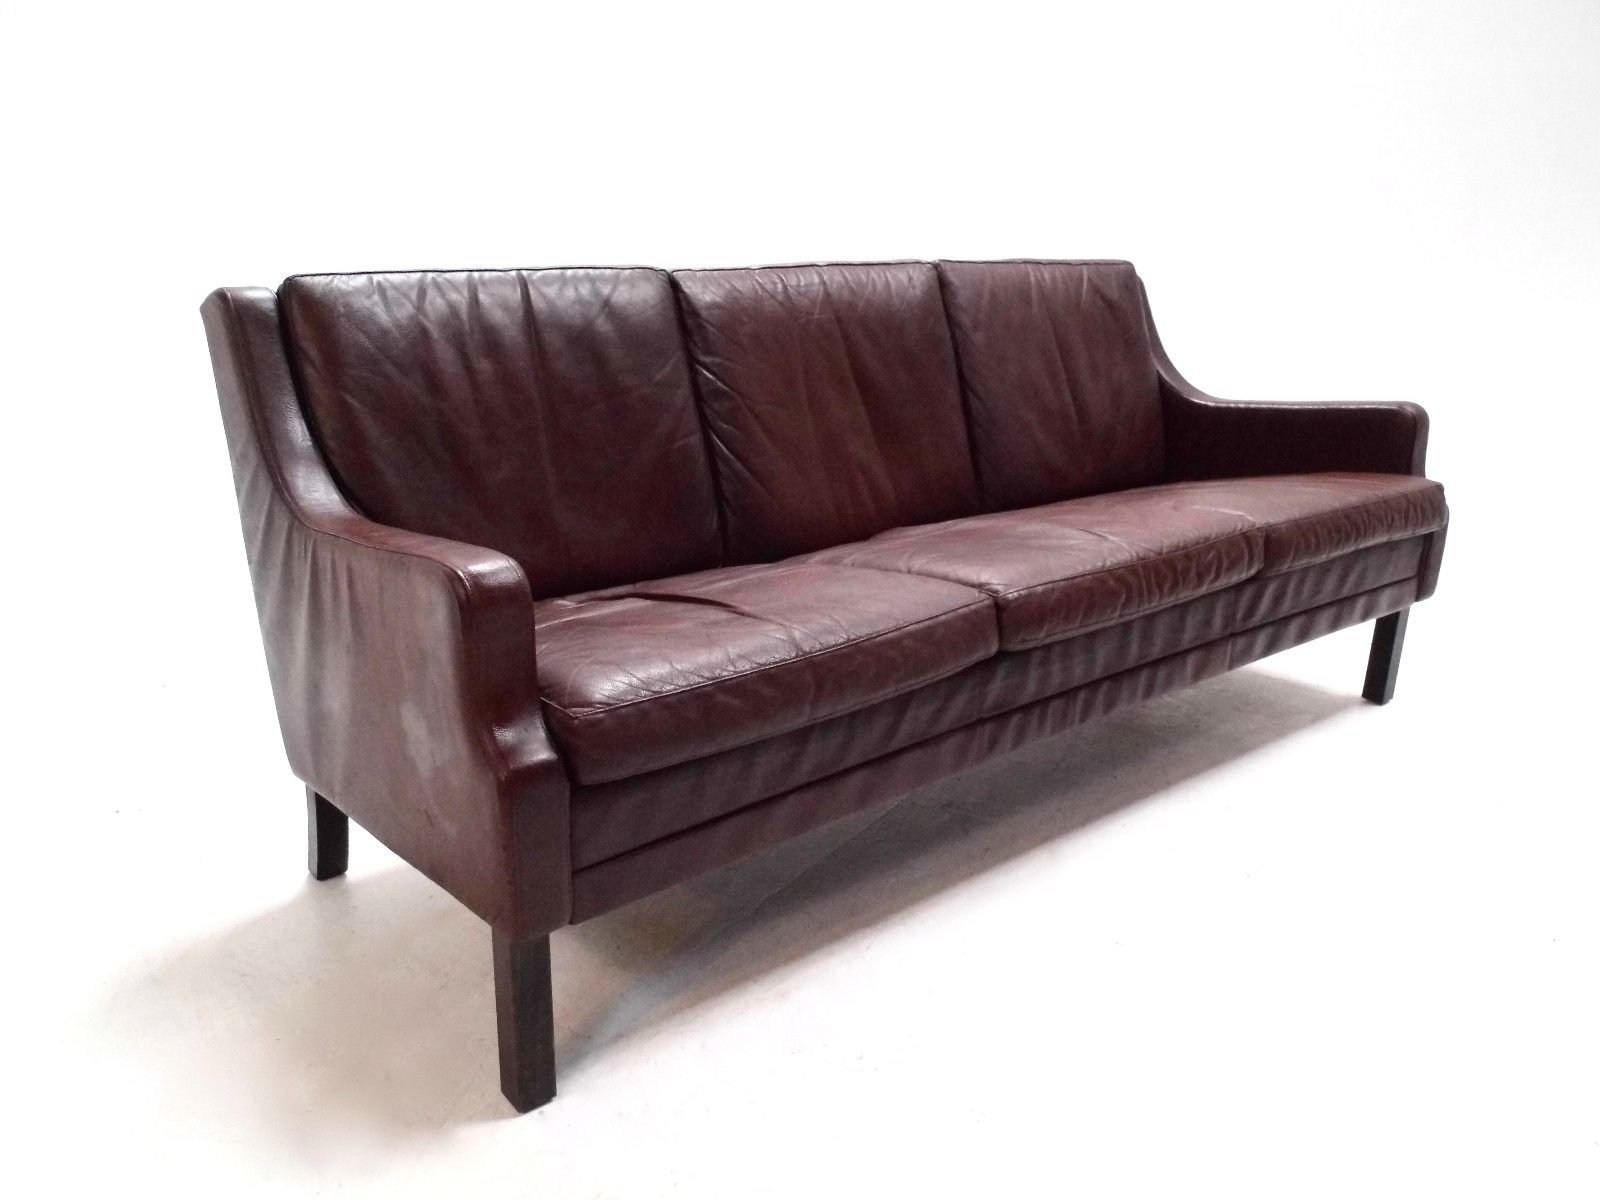 Danish brown leather three seater sofa 1960s for sale at for Sofa 8 seater